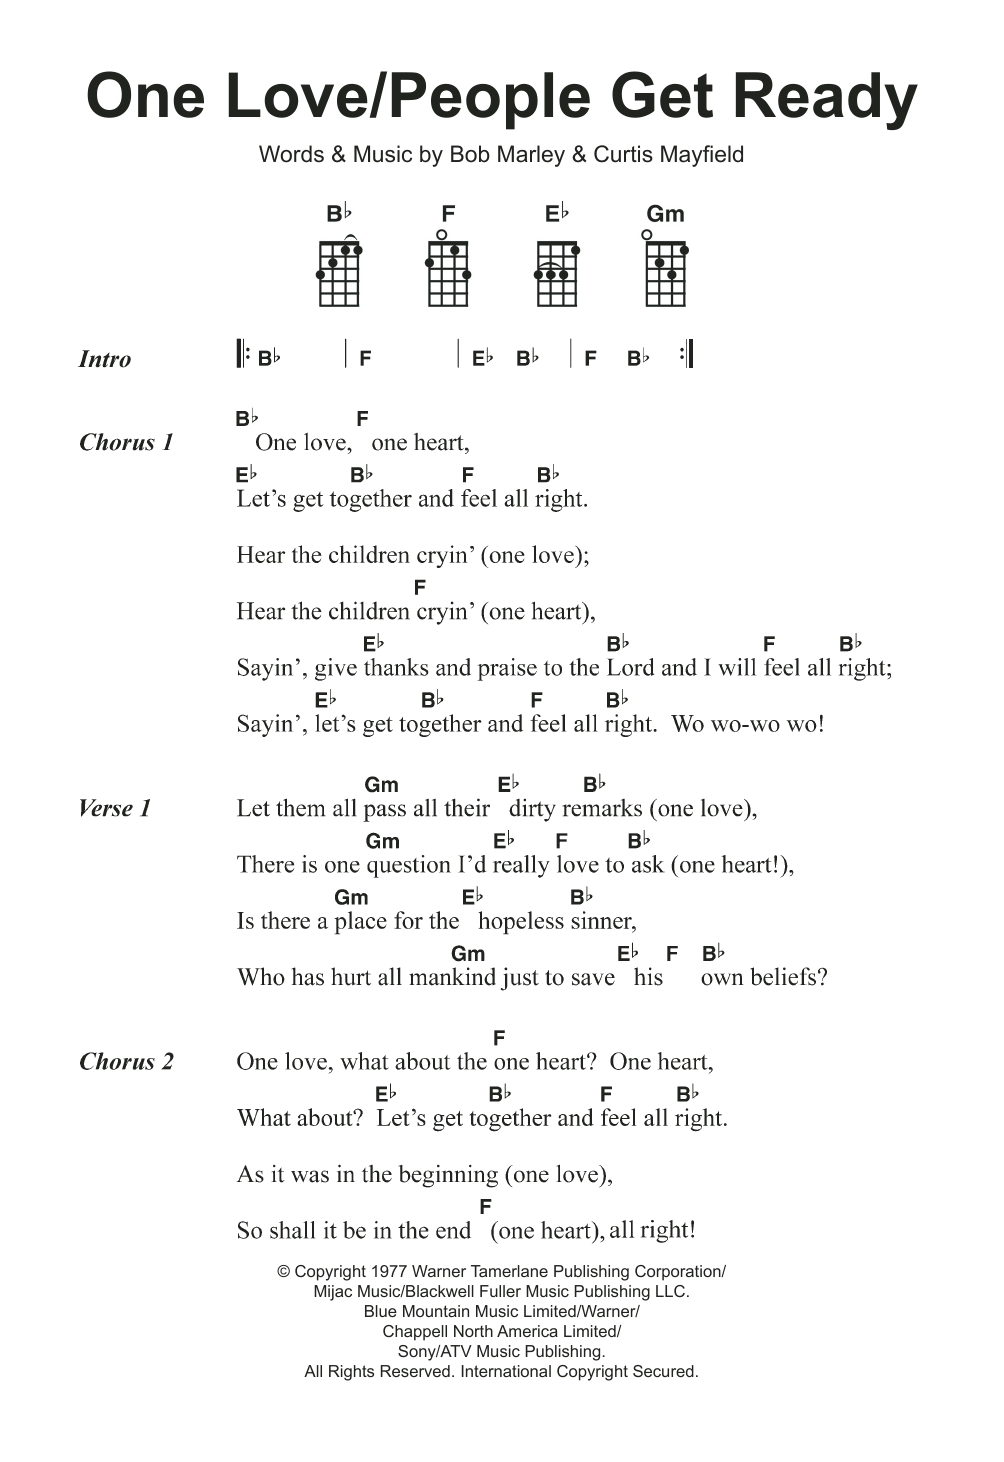 One Love/People Get Ready Sheet Music